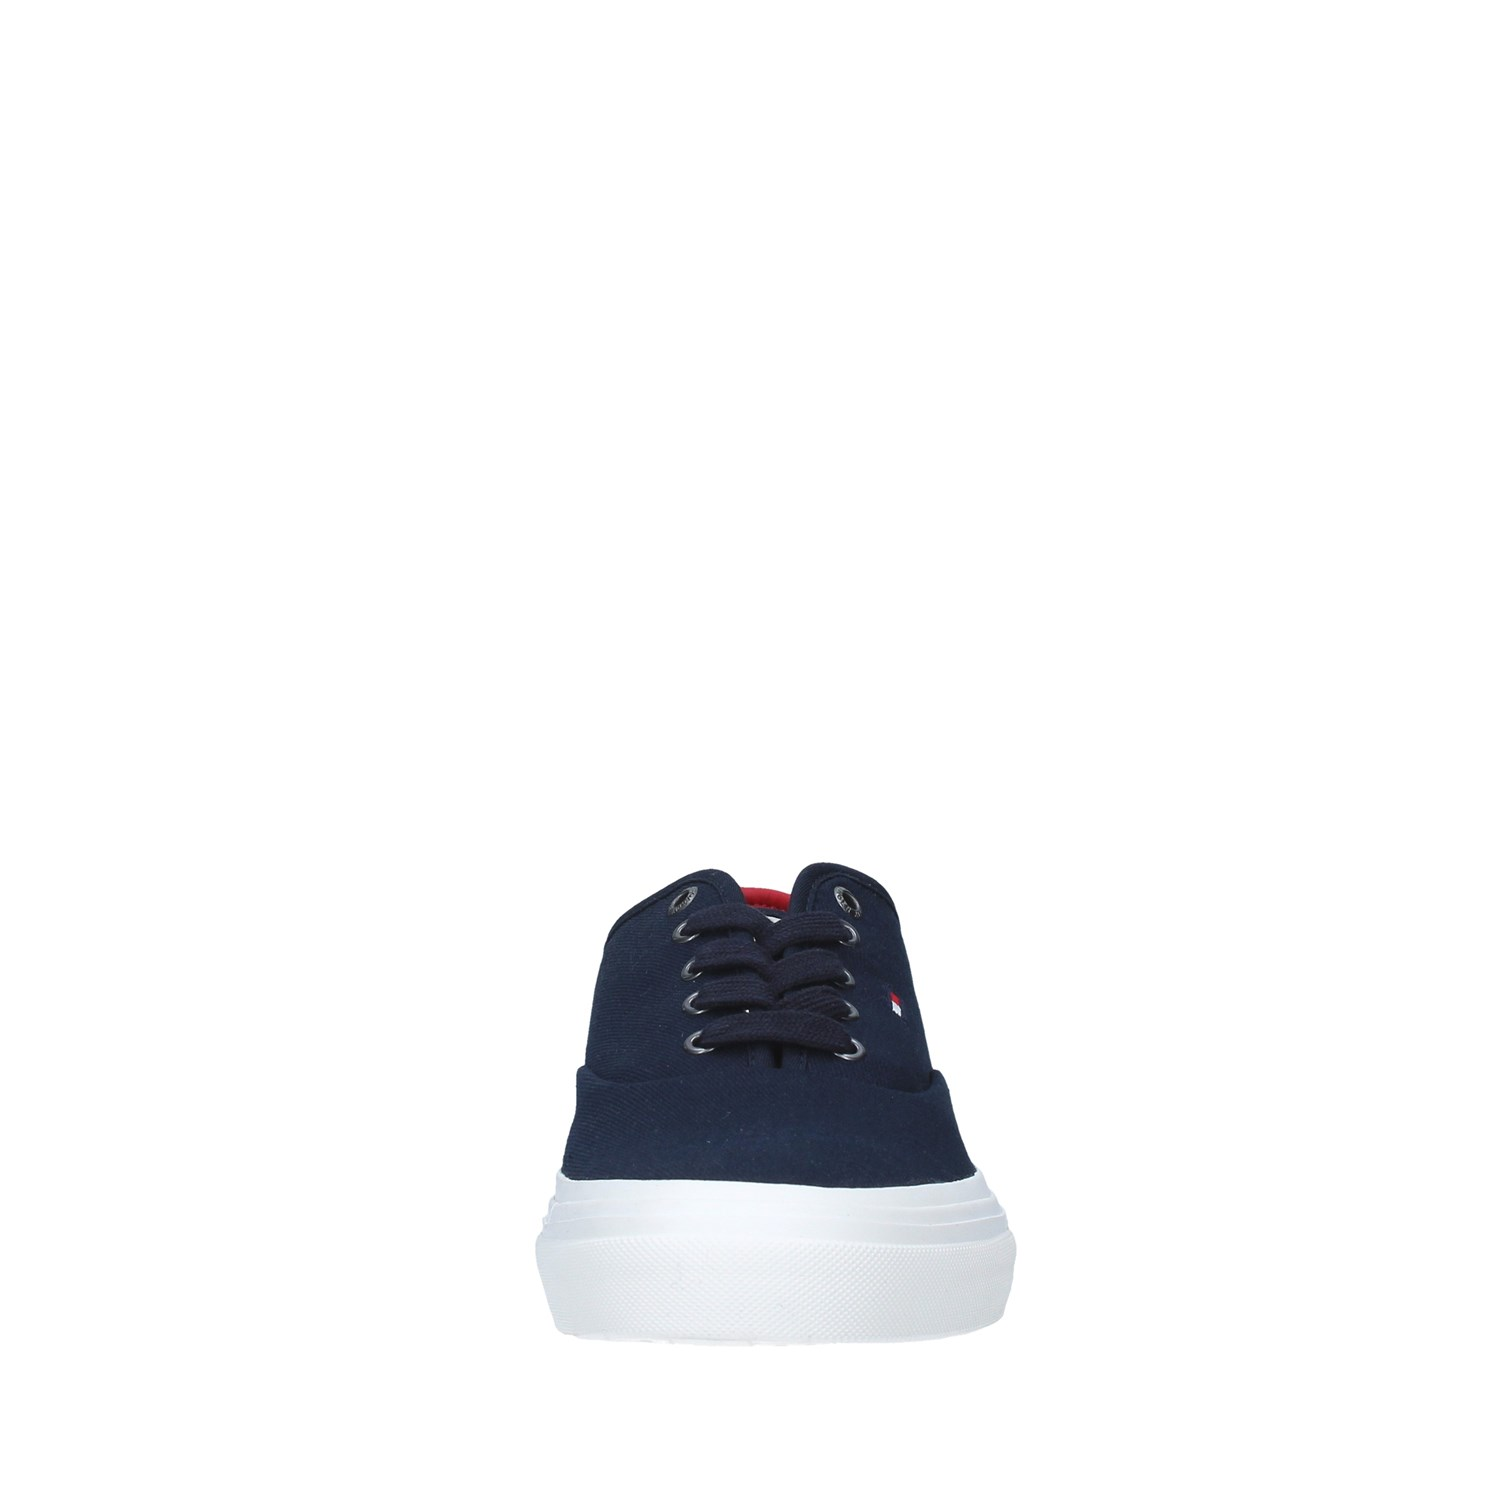 Tommy Hilfiger Shoes Man Sneakers BLUE FM0FM02670